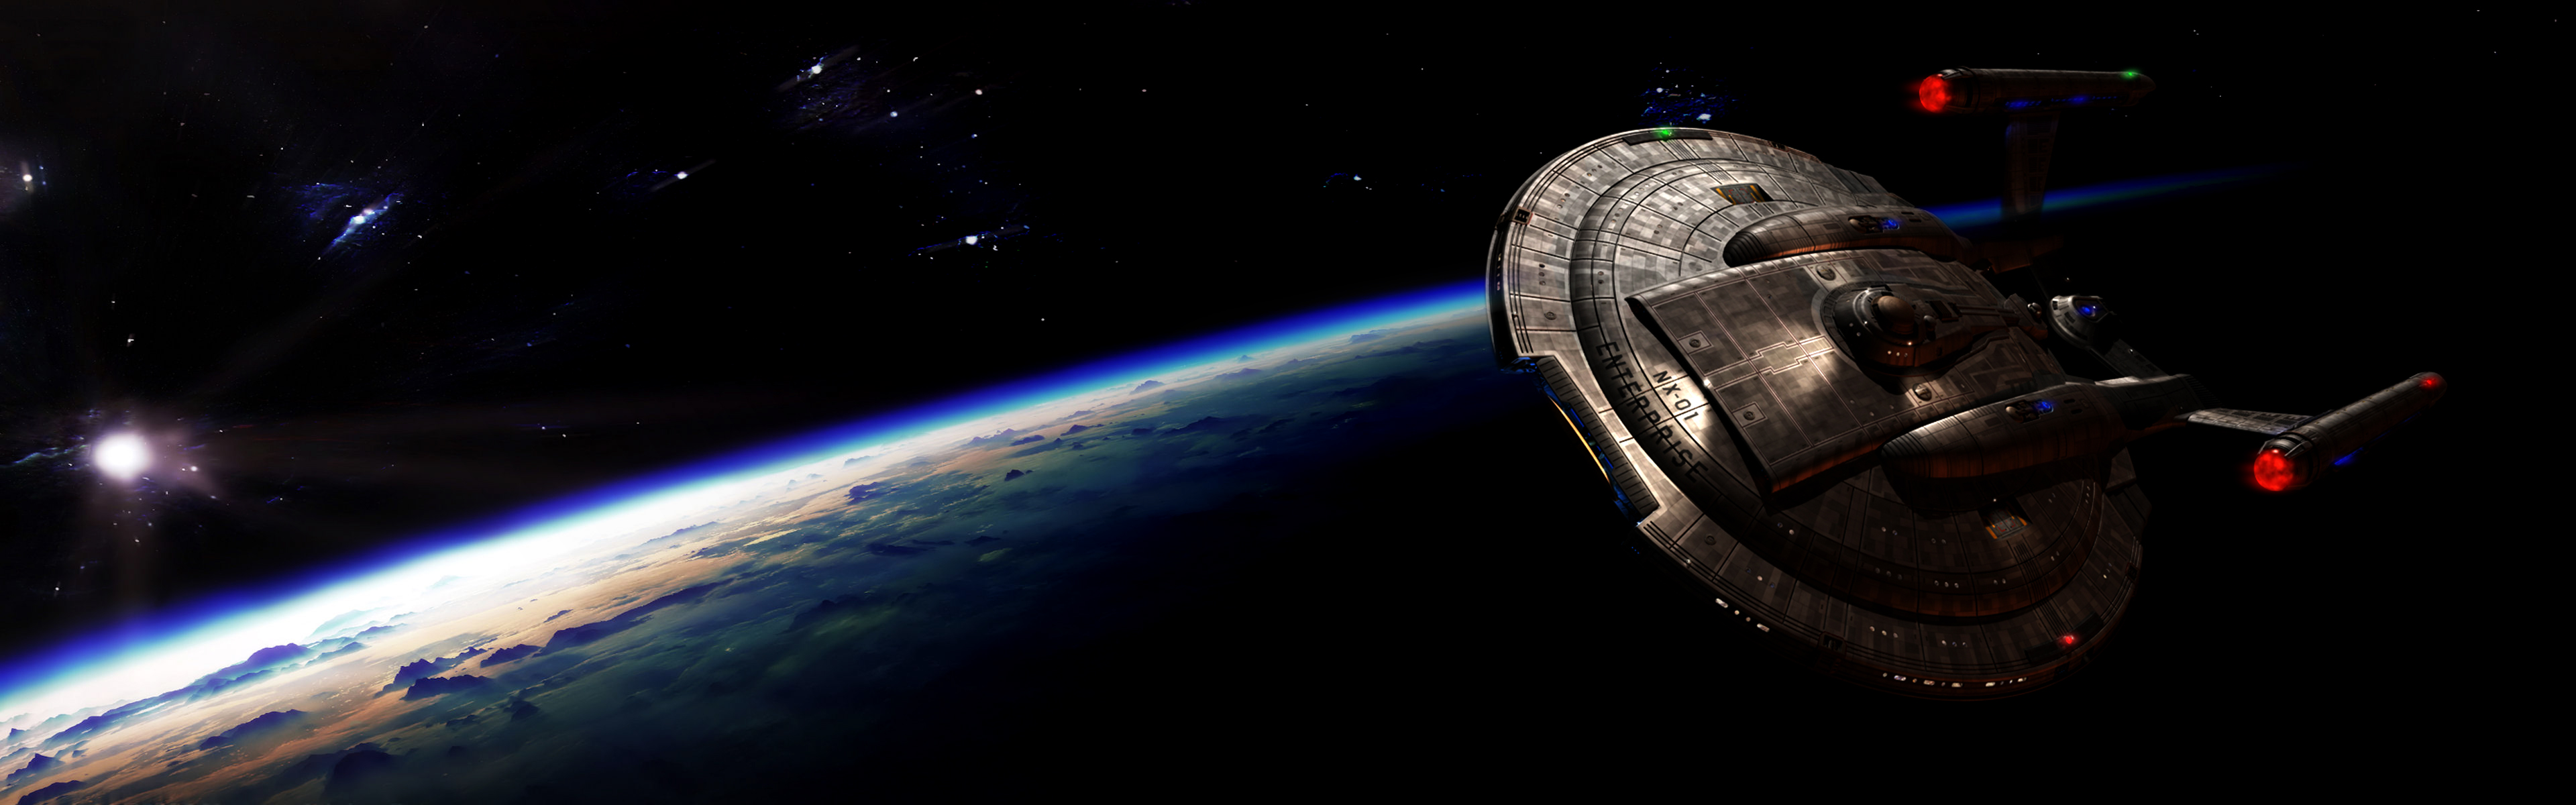 Wallpaper Abyss Explore the Collection Star Trek Sci Fi Star Trek 3840x1200